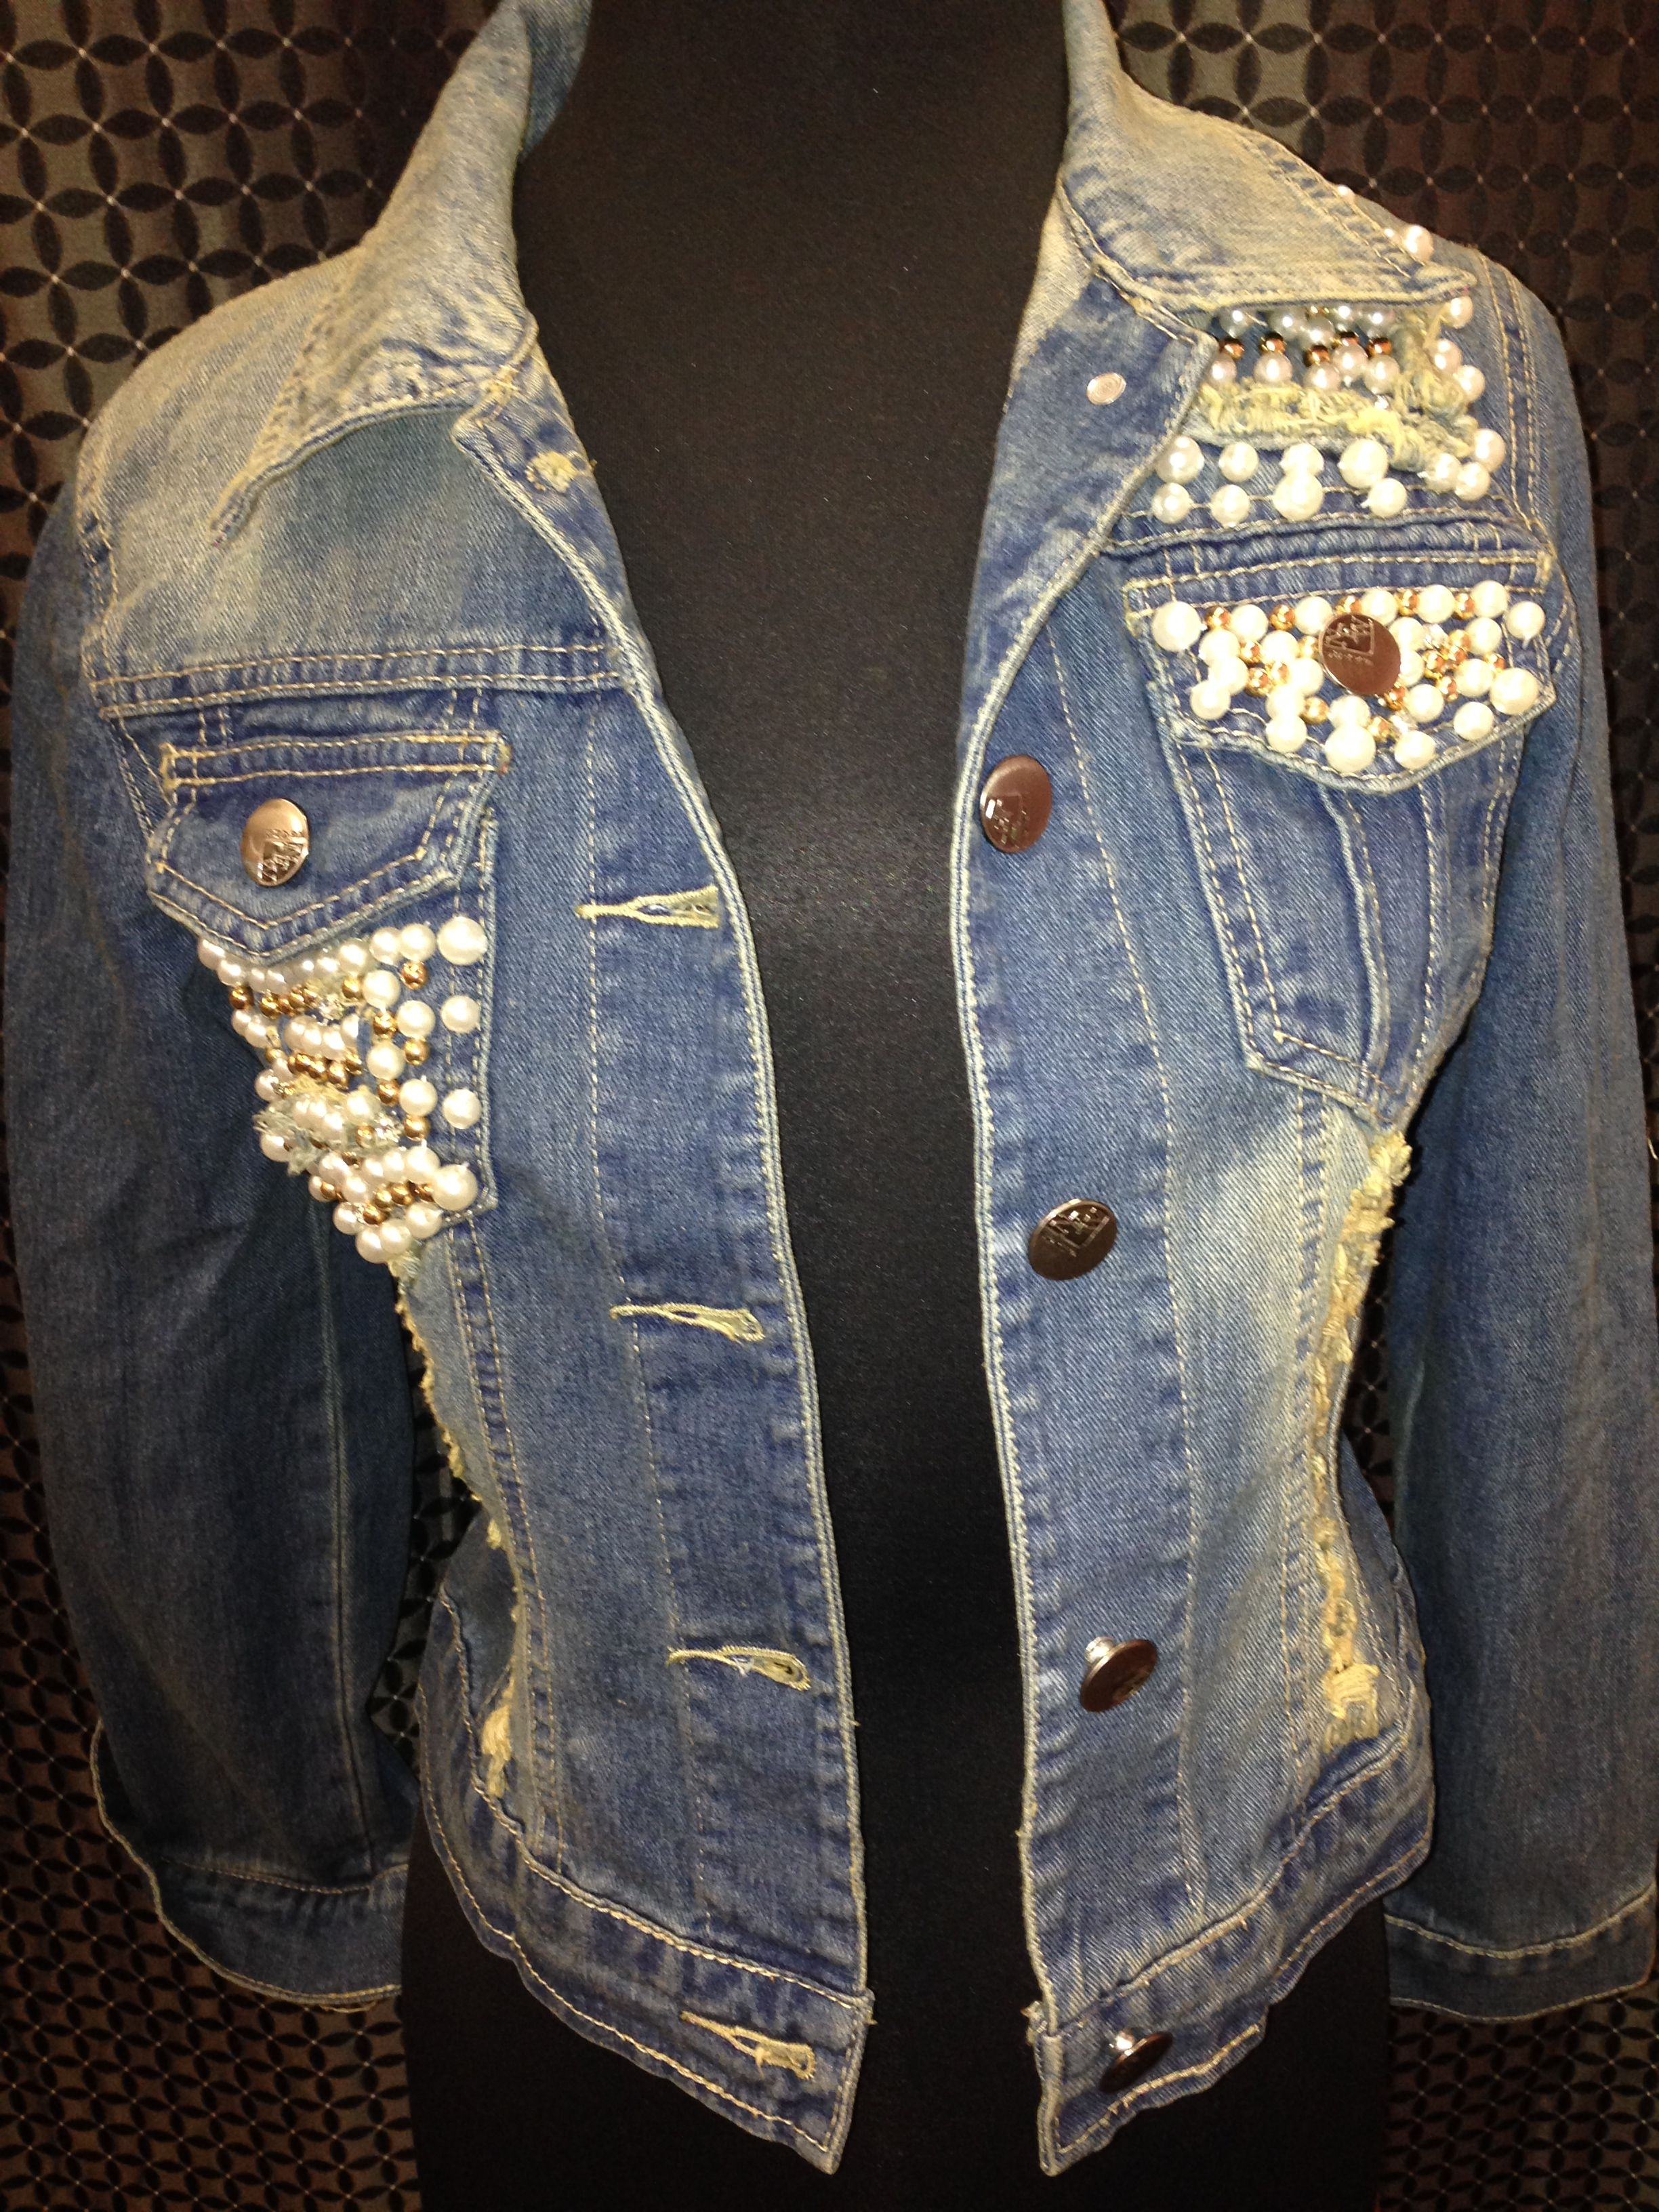 Maximize Your Beauty With Beautiful Pearl Jewelry Denim And Lace Embellished Denim Embellished Denim Jacket [ 3264 x 2448 Pixel ]